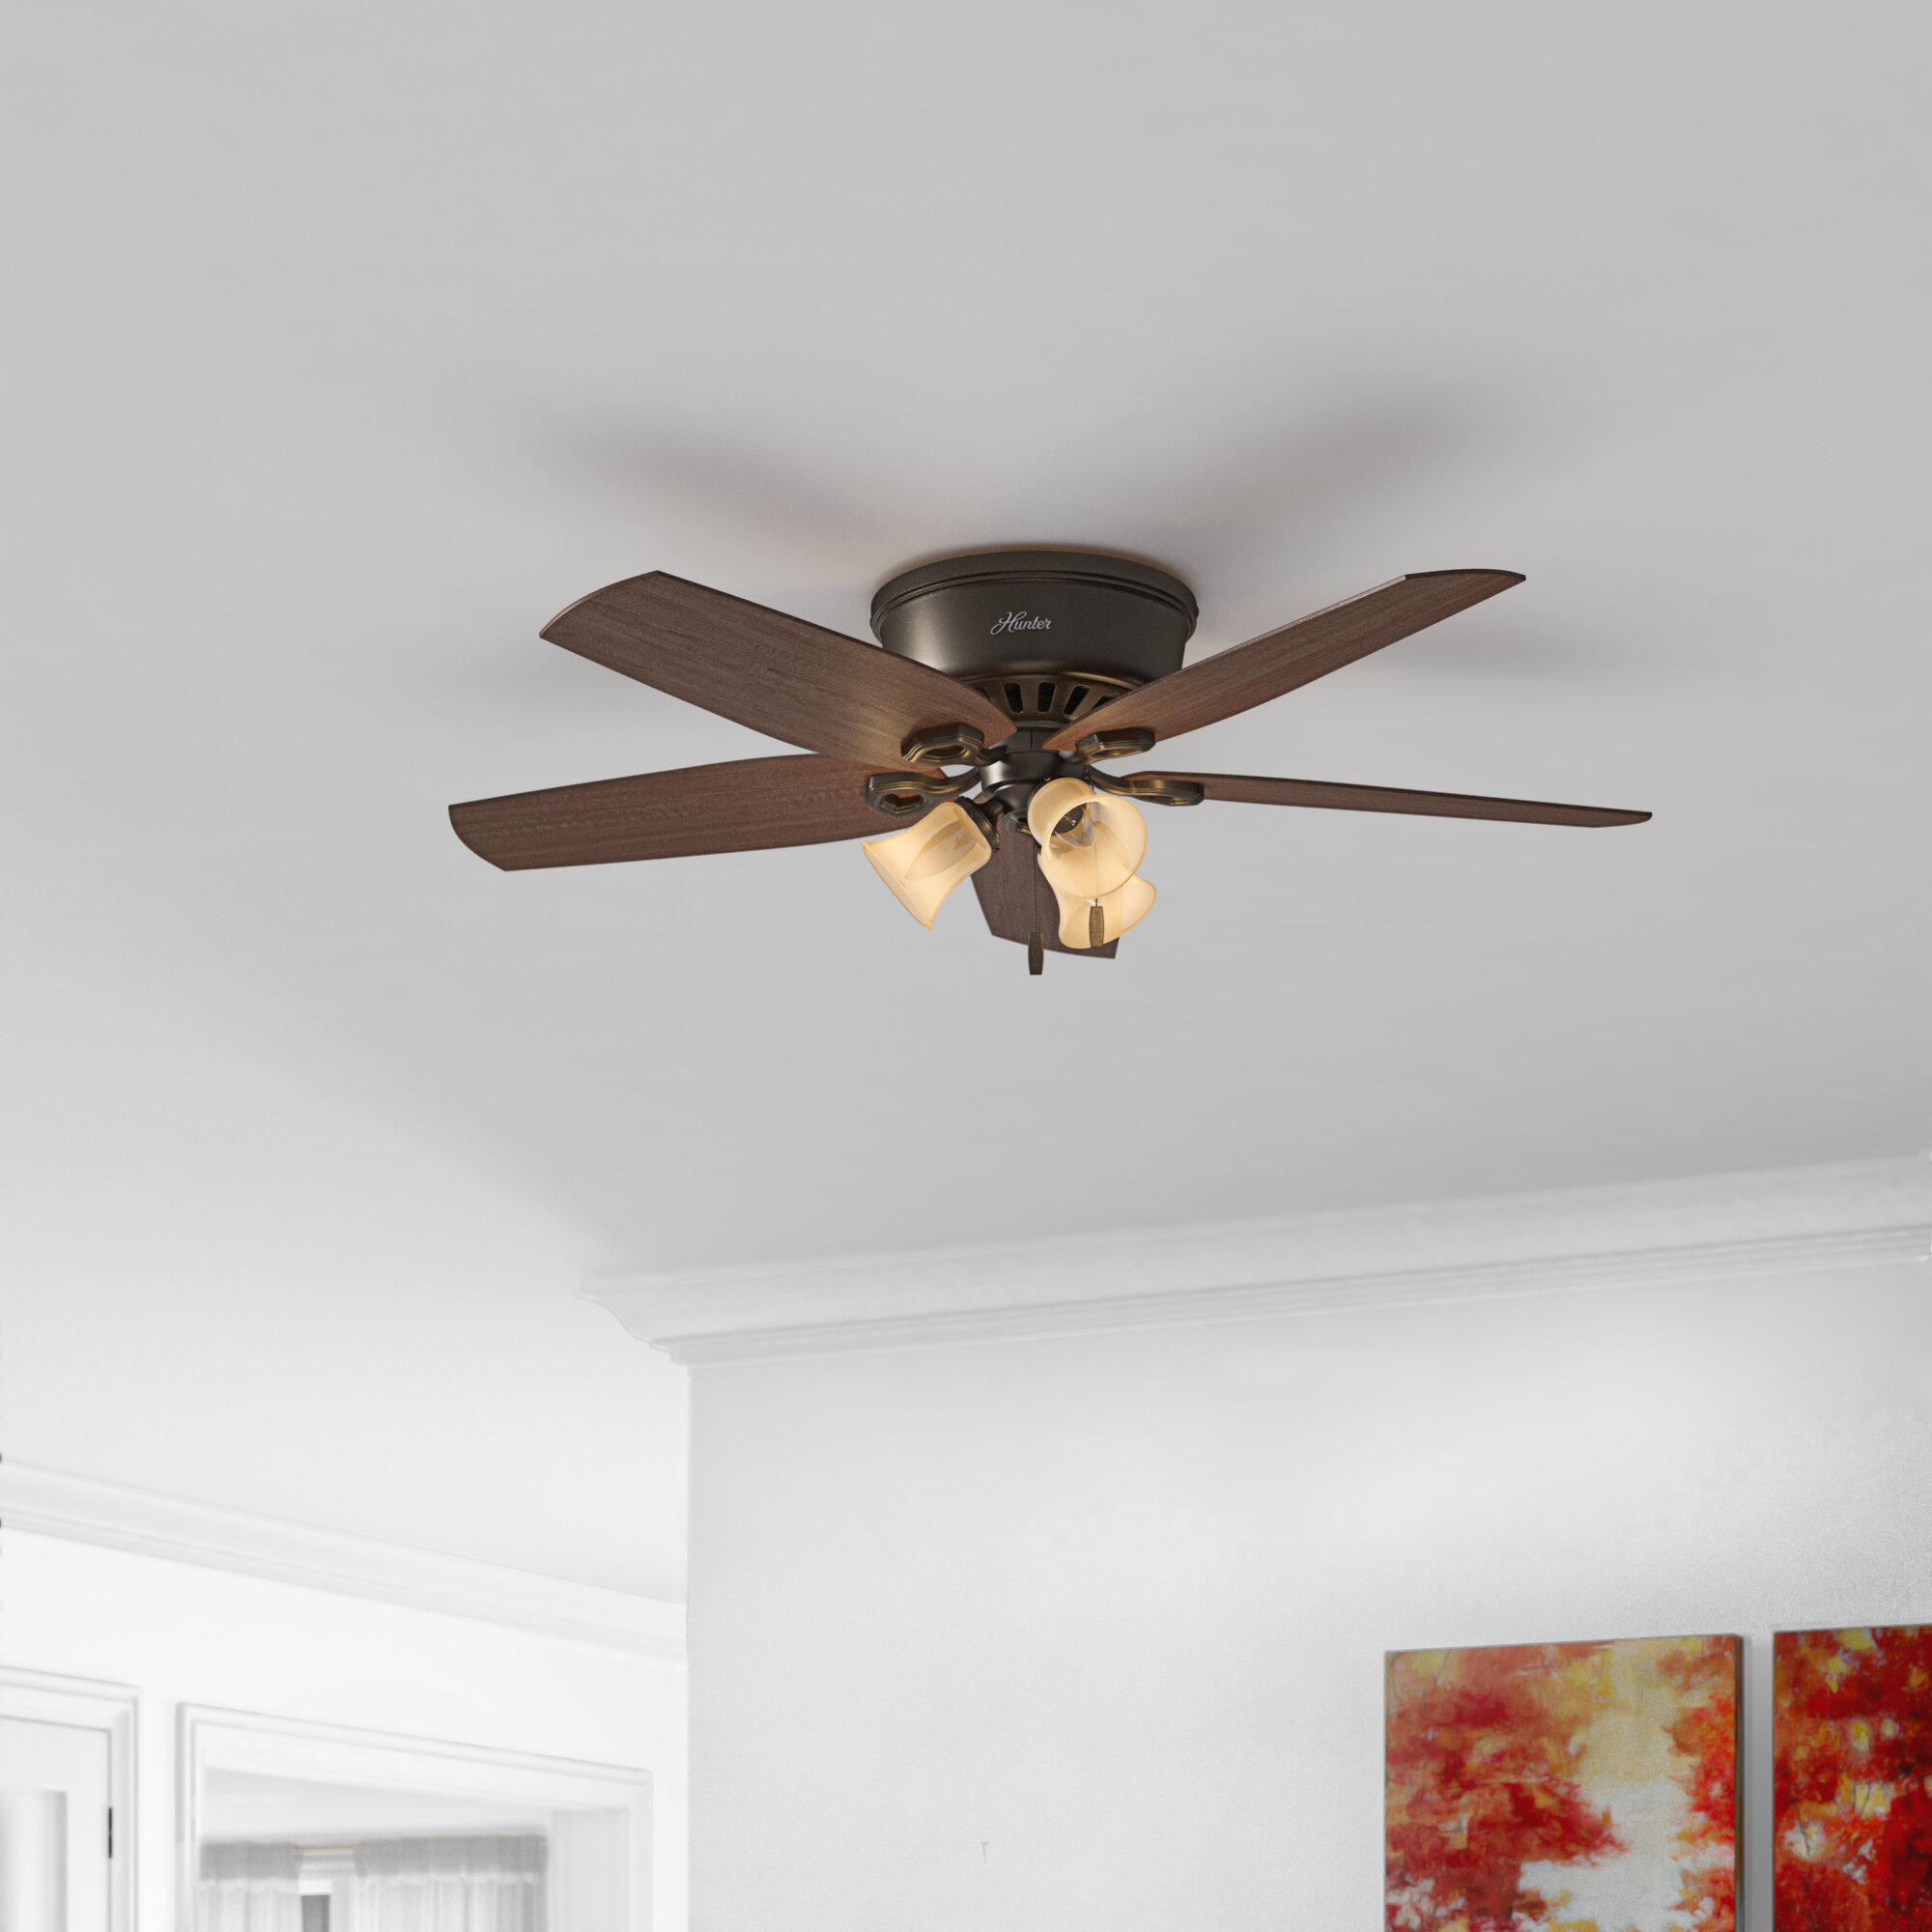 Hunter Fan 42 Builder Low Profile 5 Blade Flush Mount Ceiling Fan With Pull Chain And Light Kit Included Reviews Wayfair